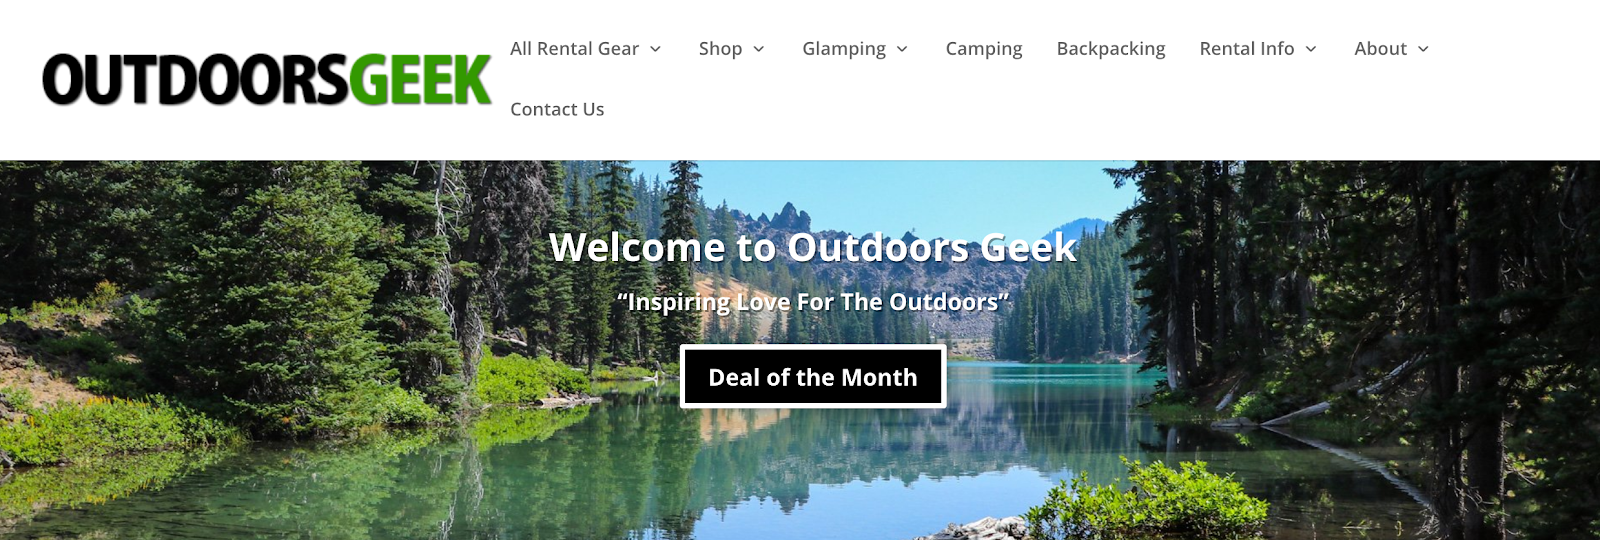 Rent Camping and Backpacking Gear at Outdoors Geek